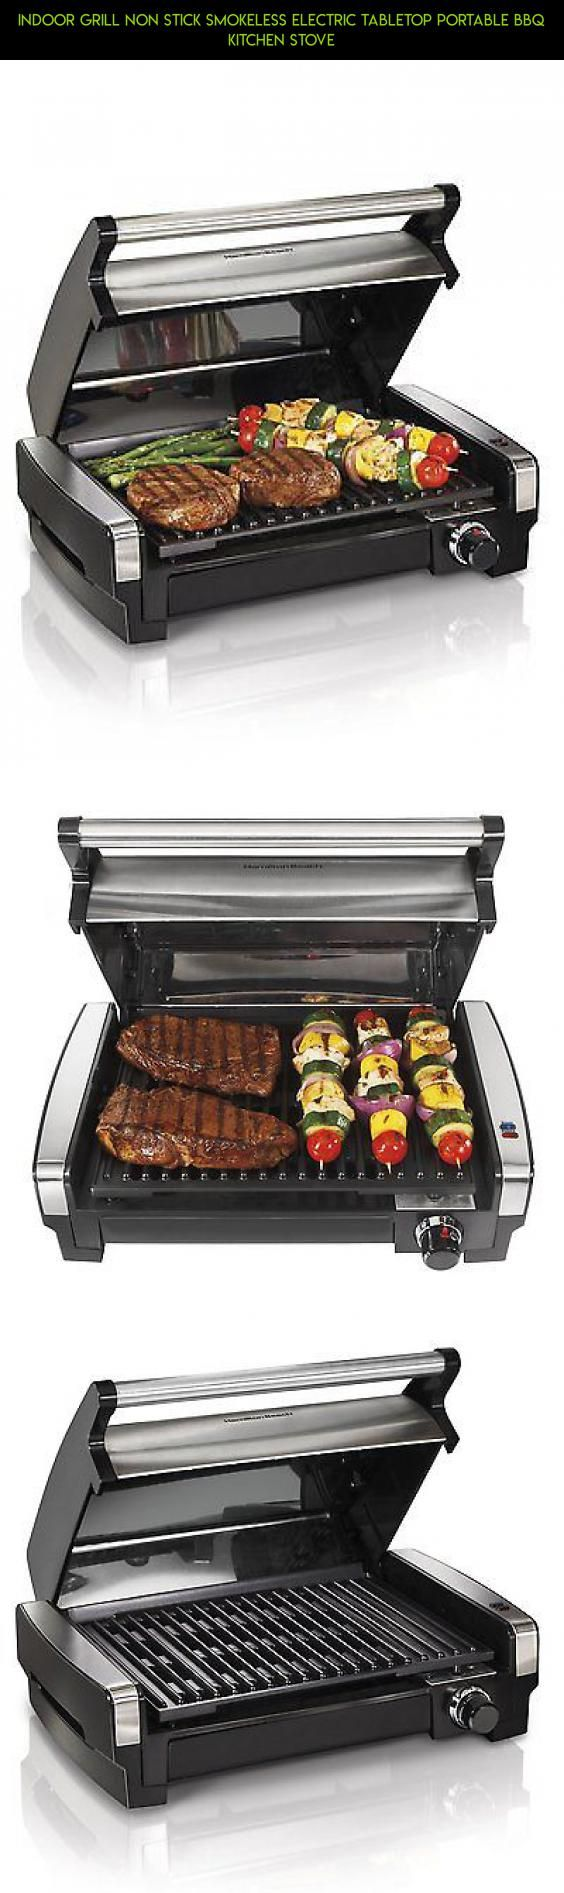 Indoor Grill Non Stick Smokeless Electric Tabletop Portable BBQ ...